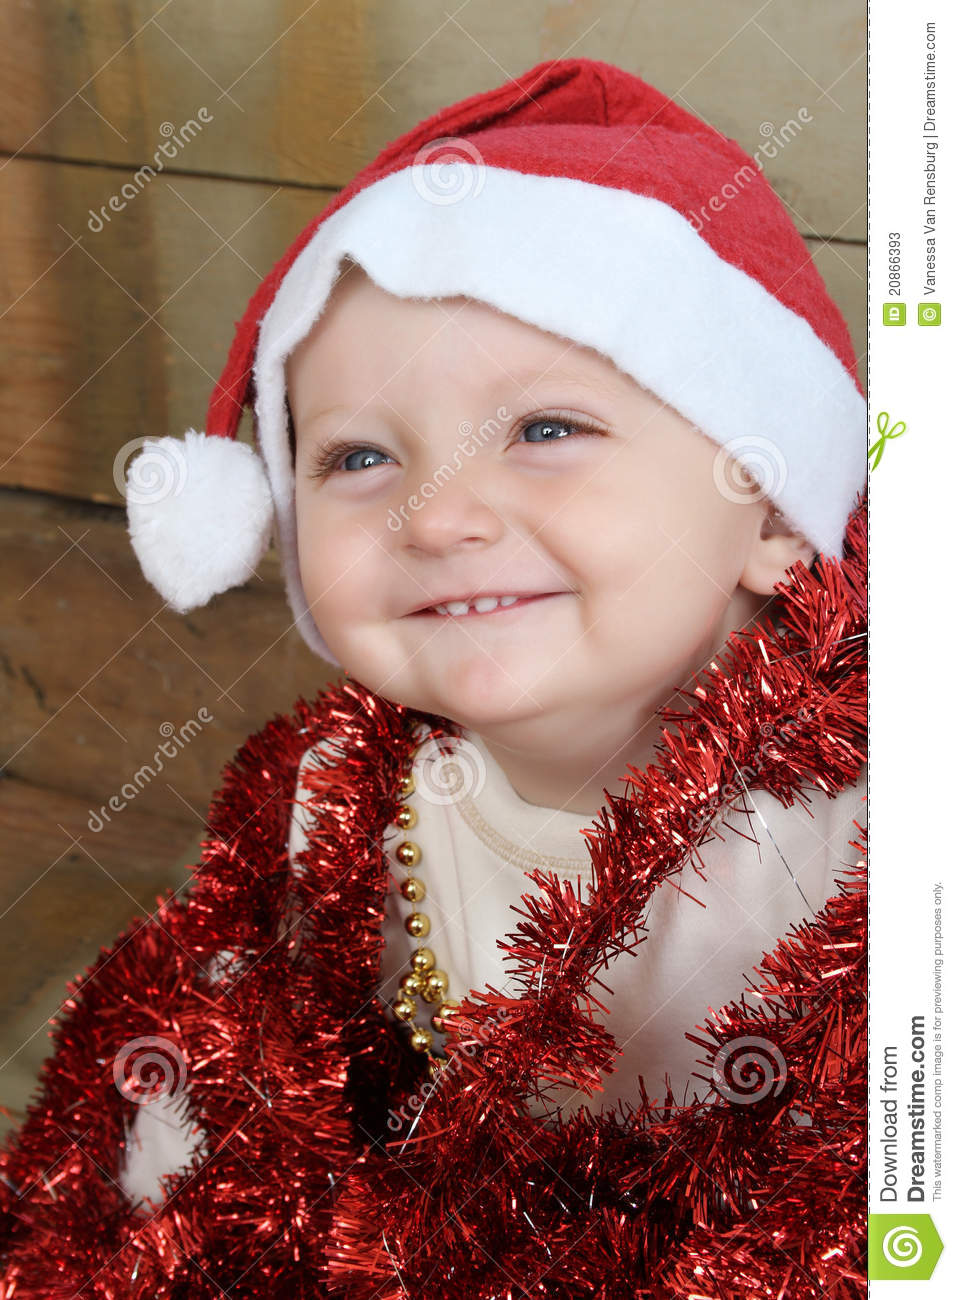 Christmas Baby Stock Image Image Of Model Decorations